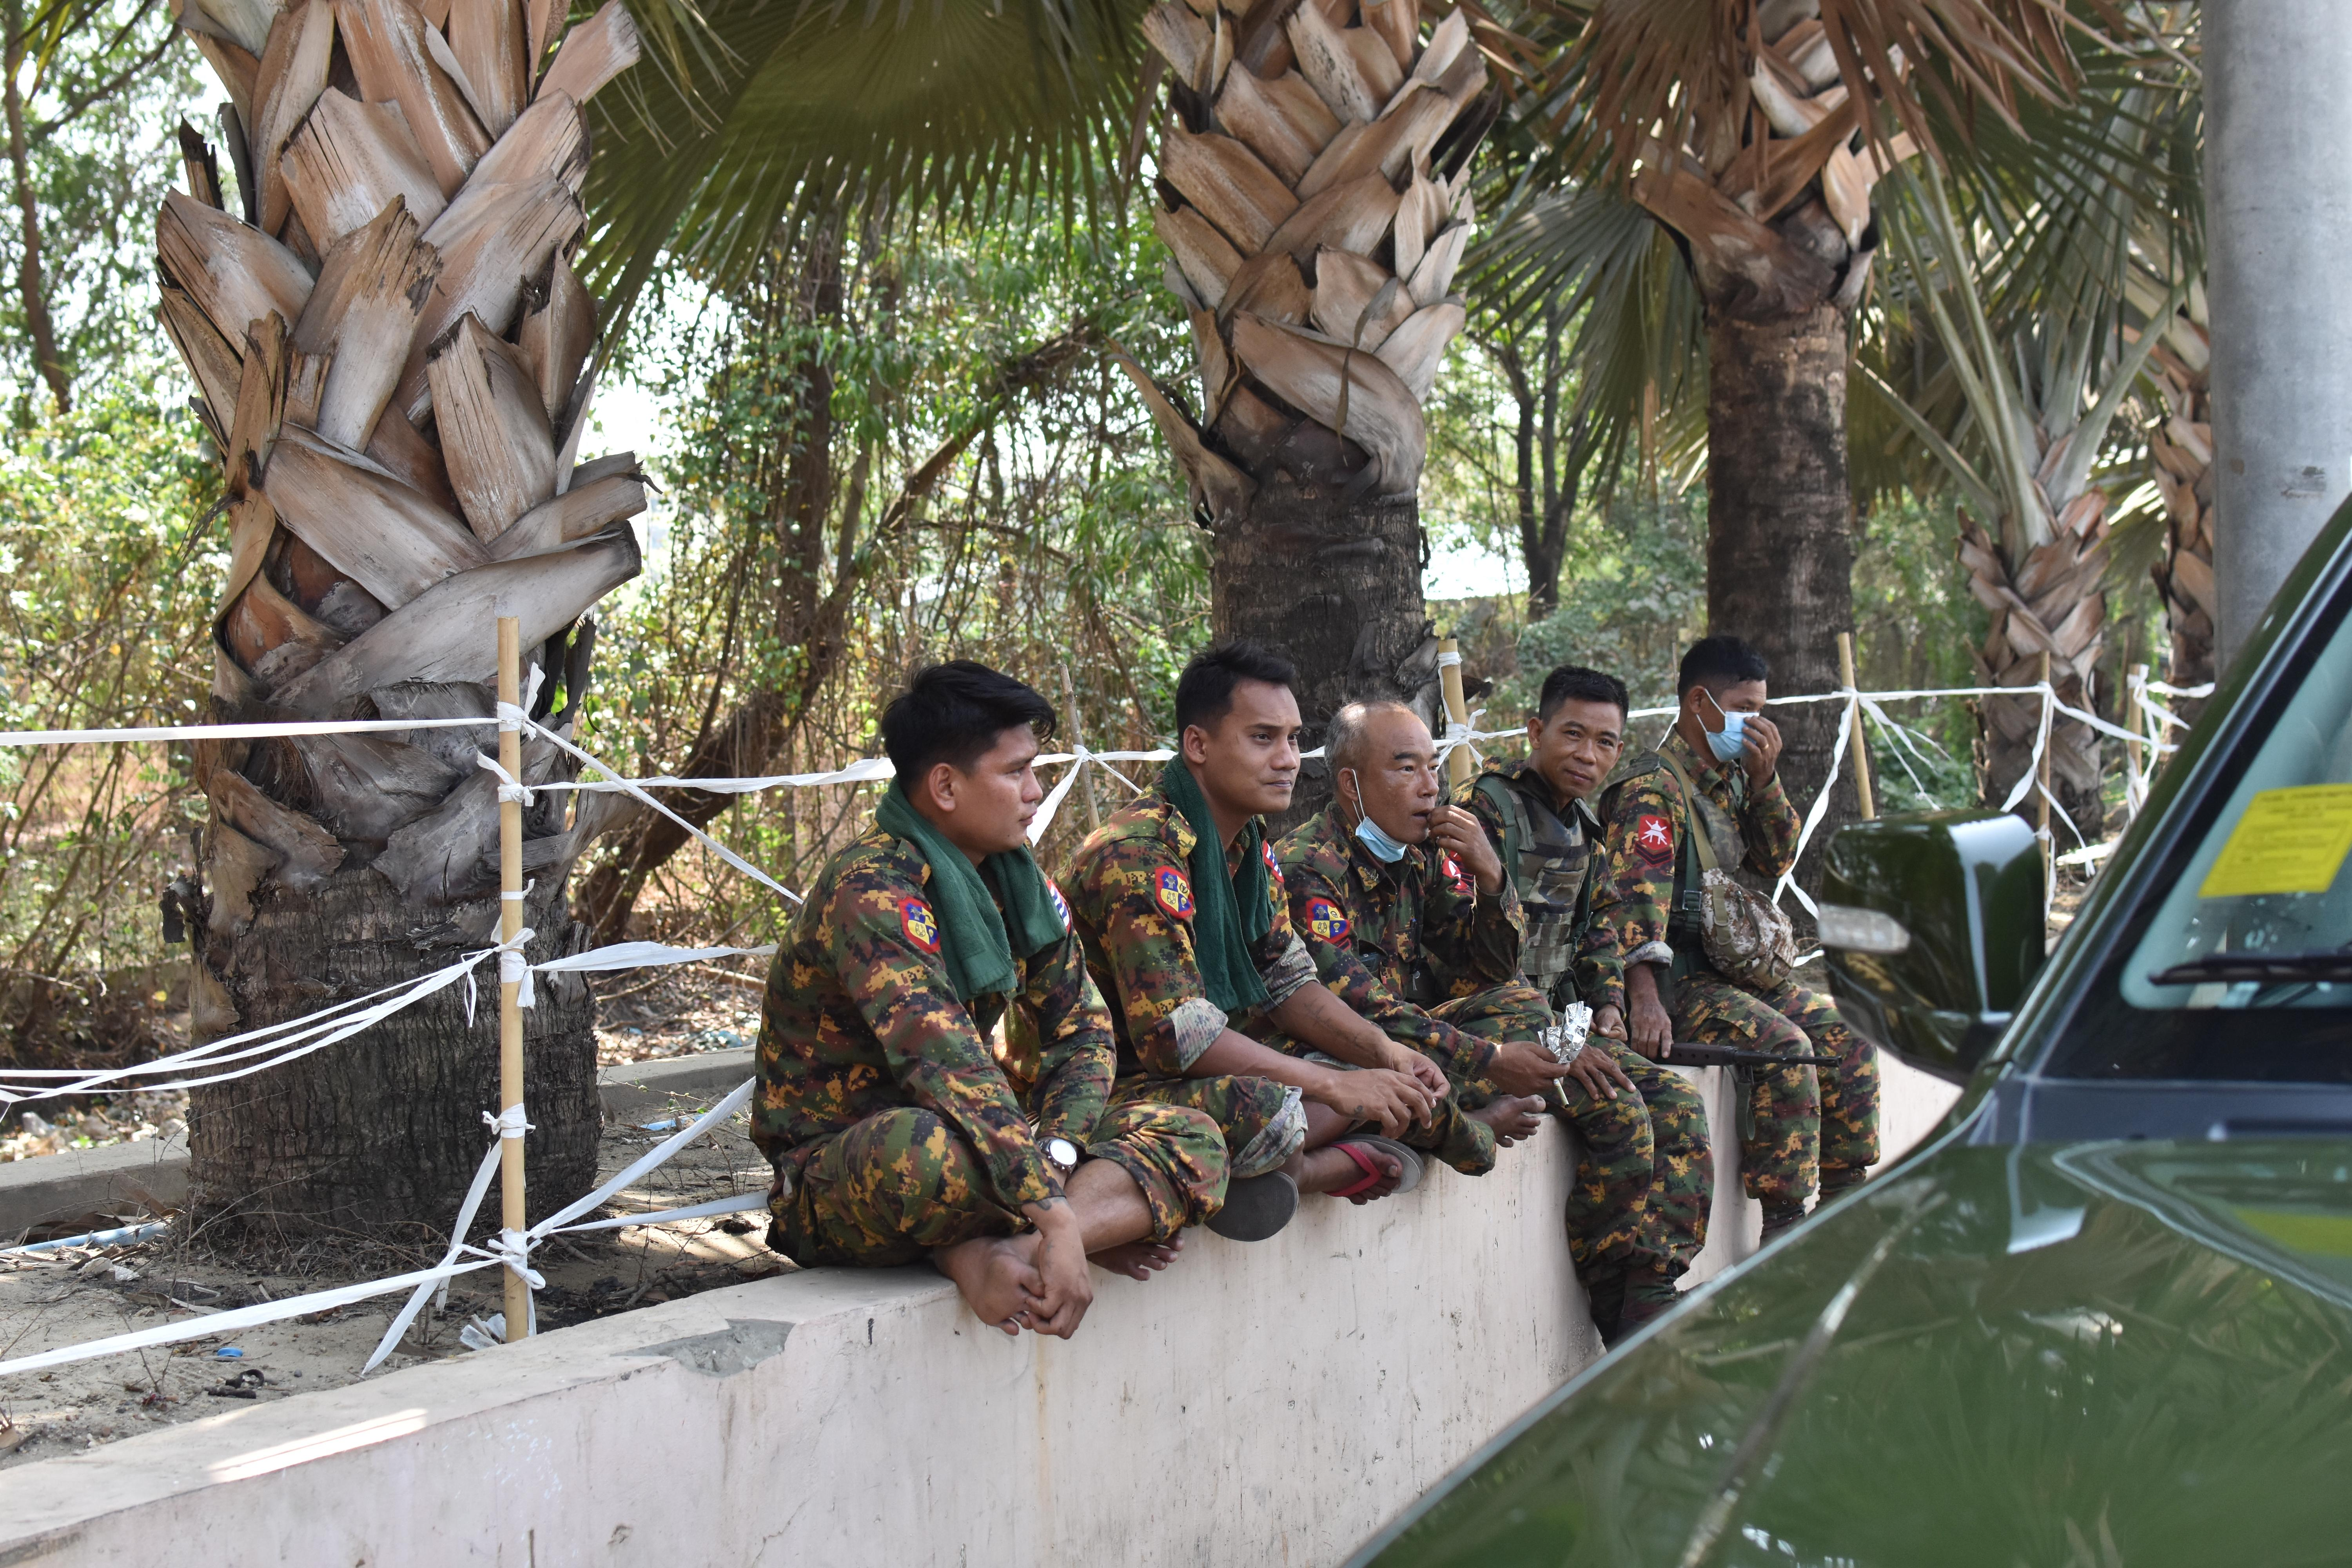 Soldiers sit on a wall in front of palm trees.